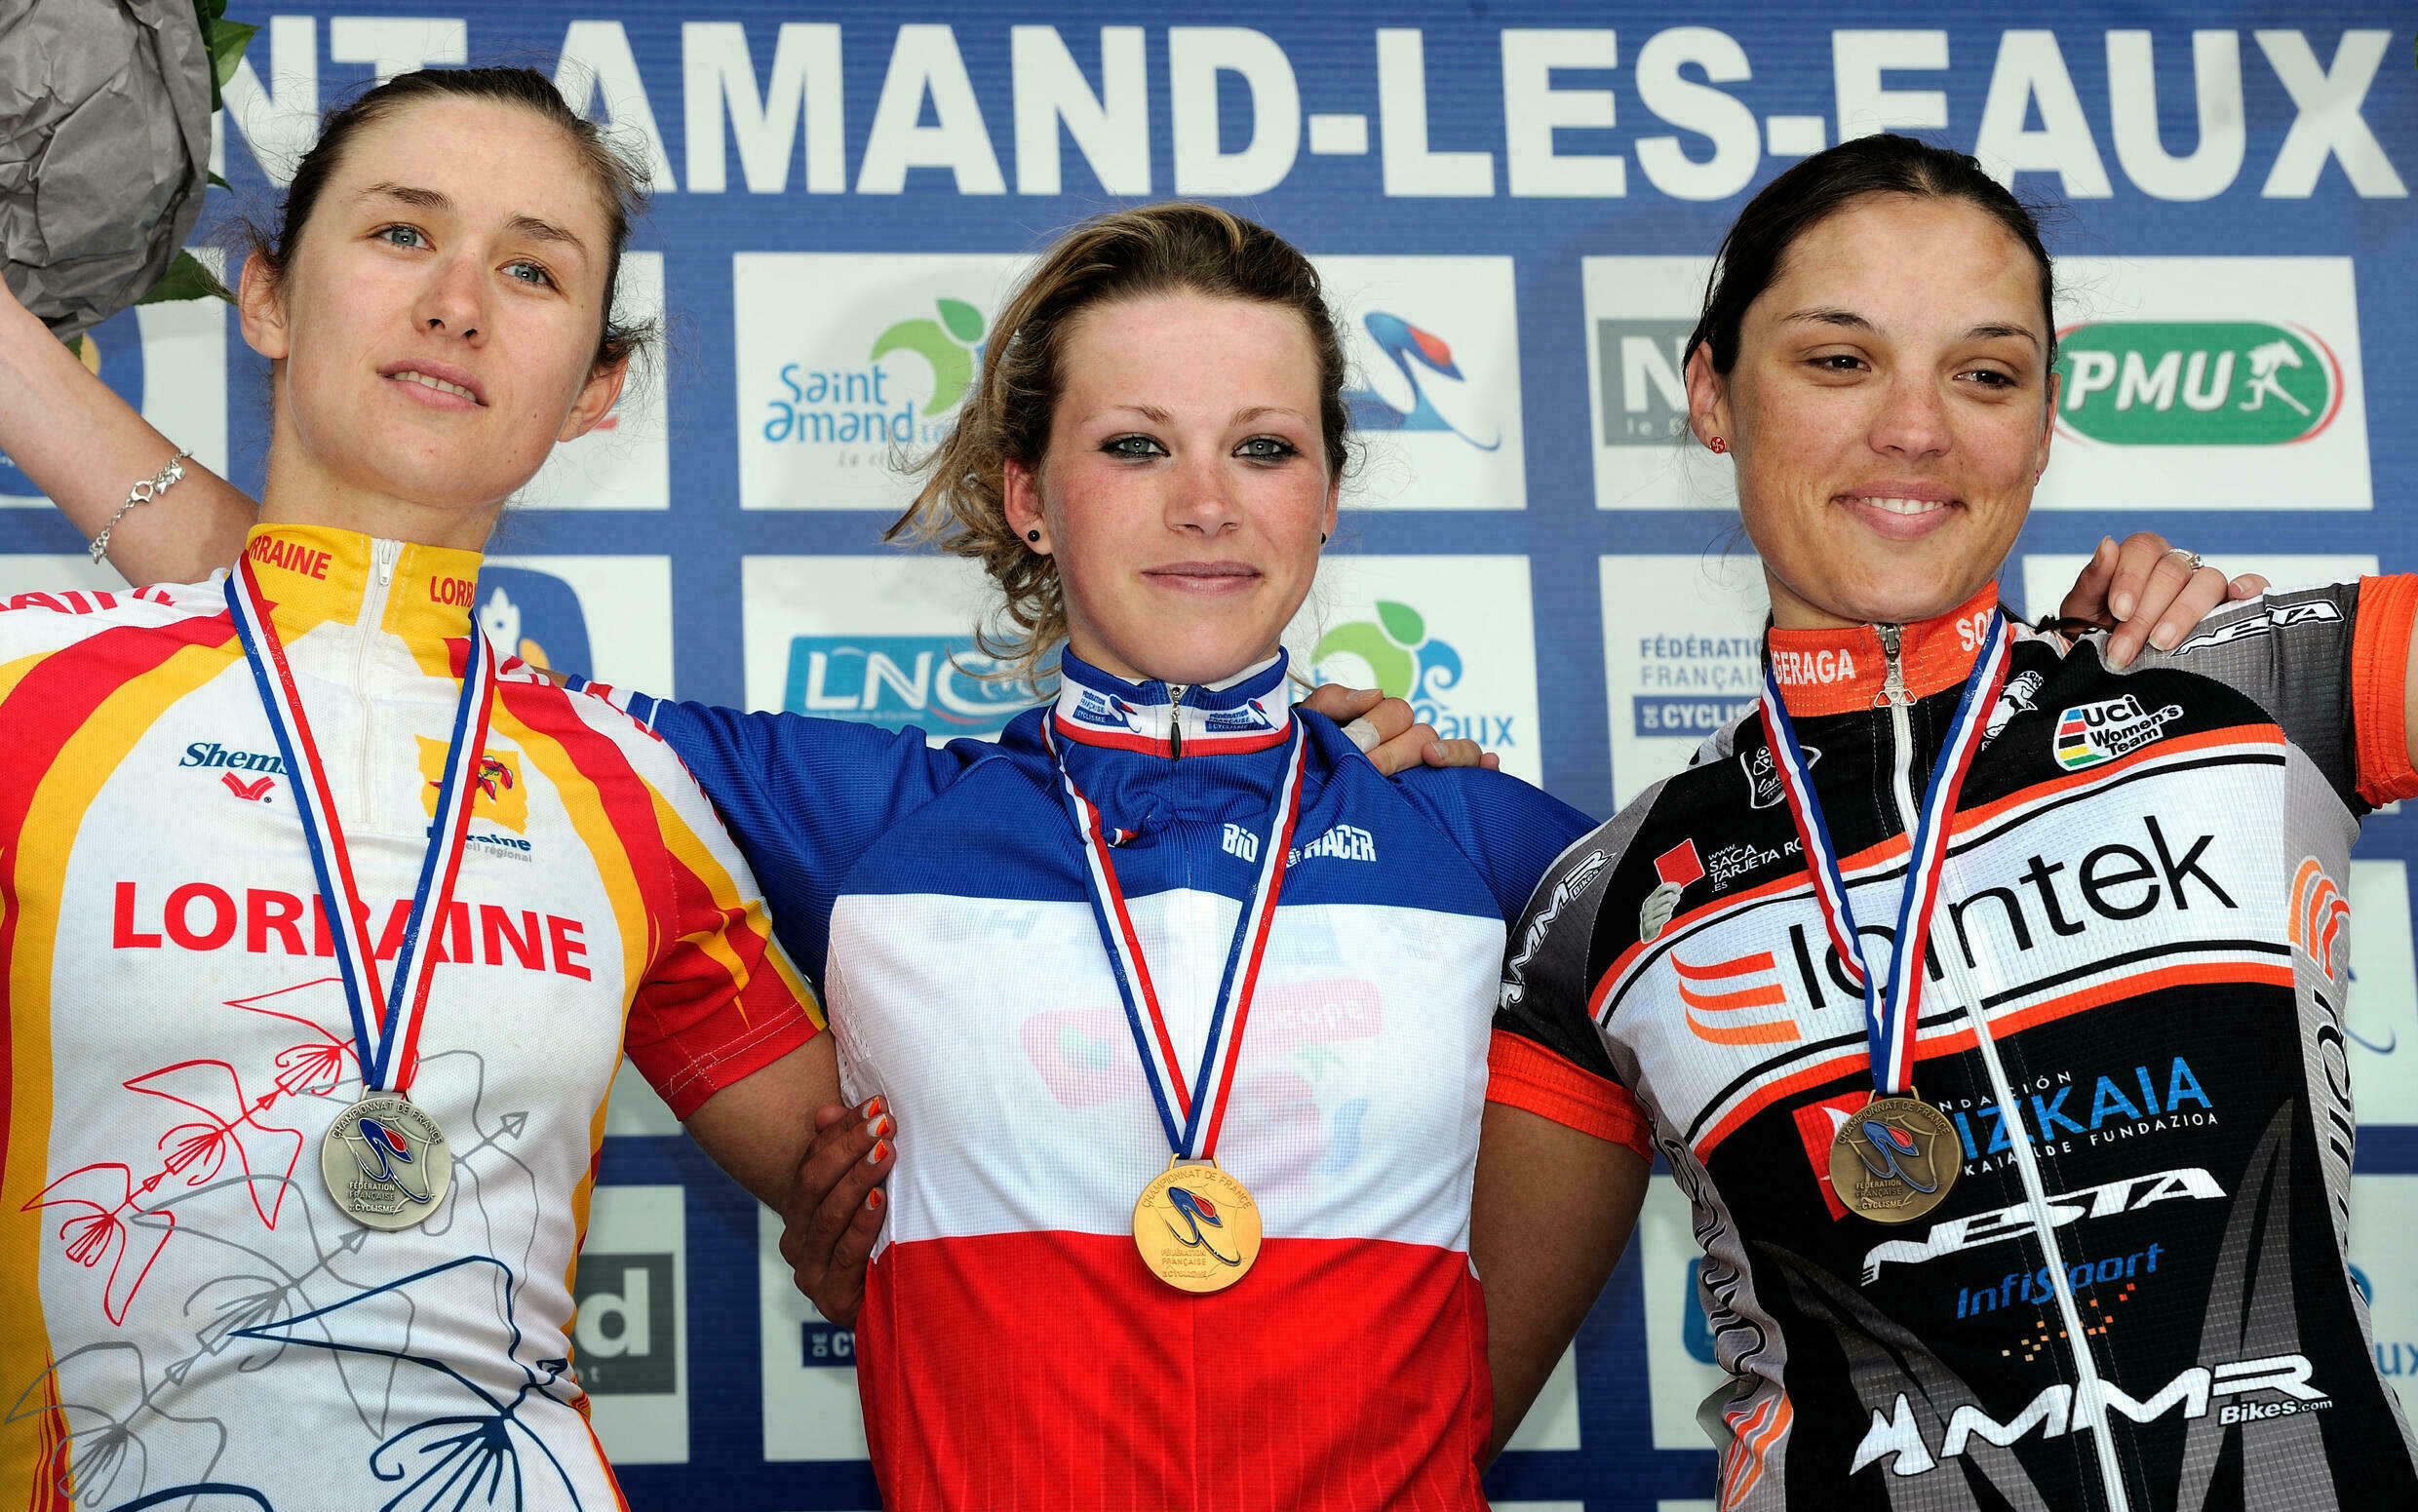 Marion Rousse during her victory at the French road cycling championships in 2012.